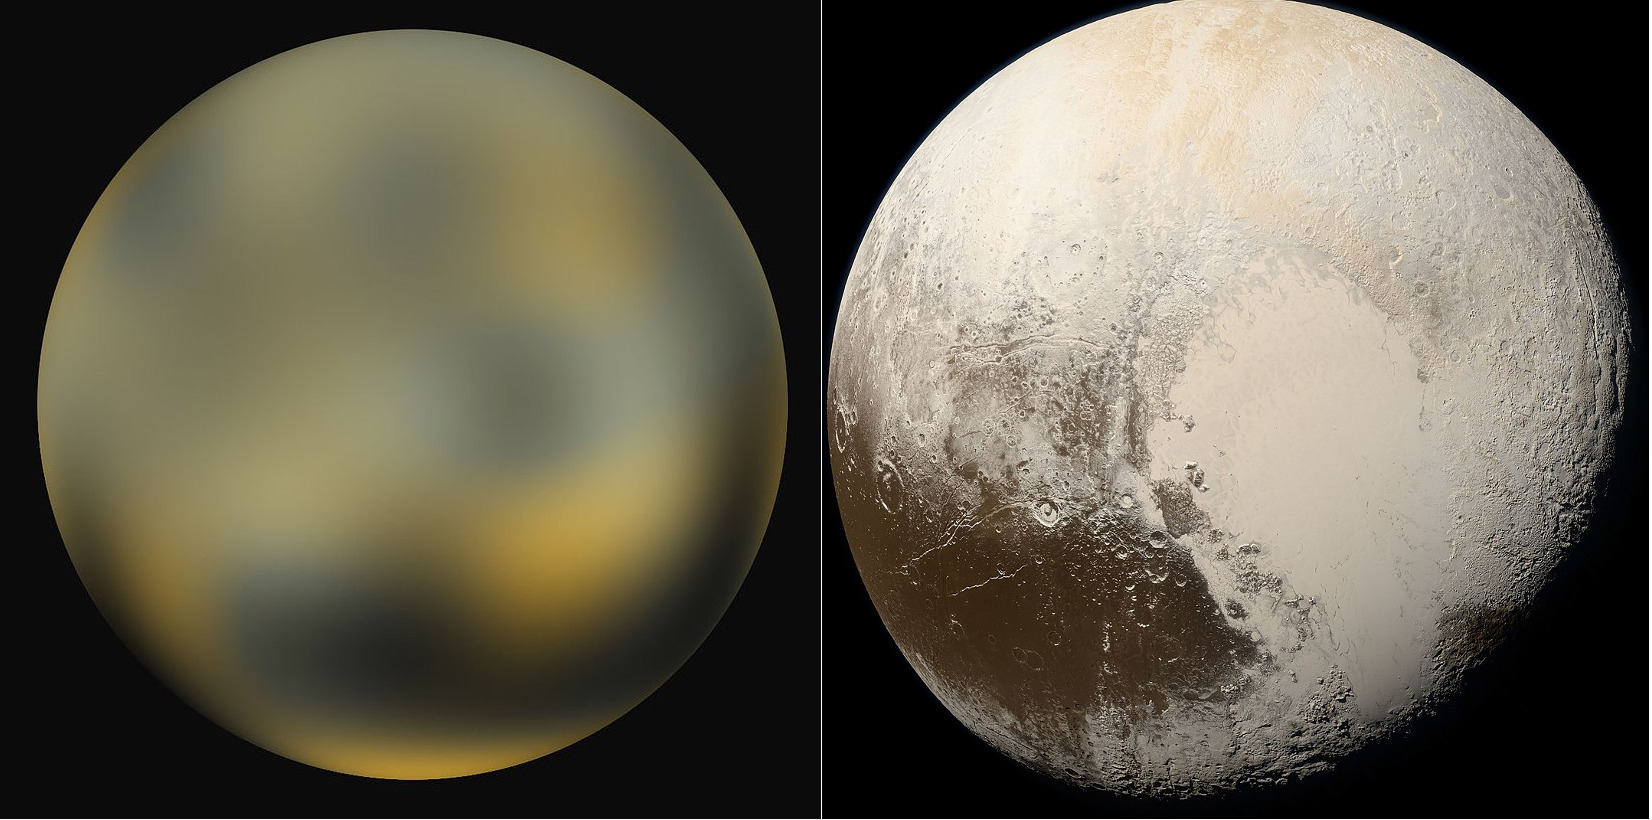 Pluto by Hubble and New Horizons